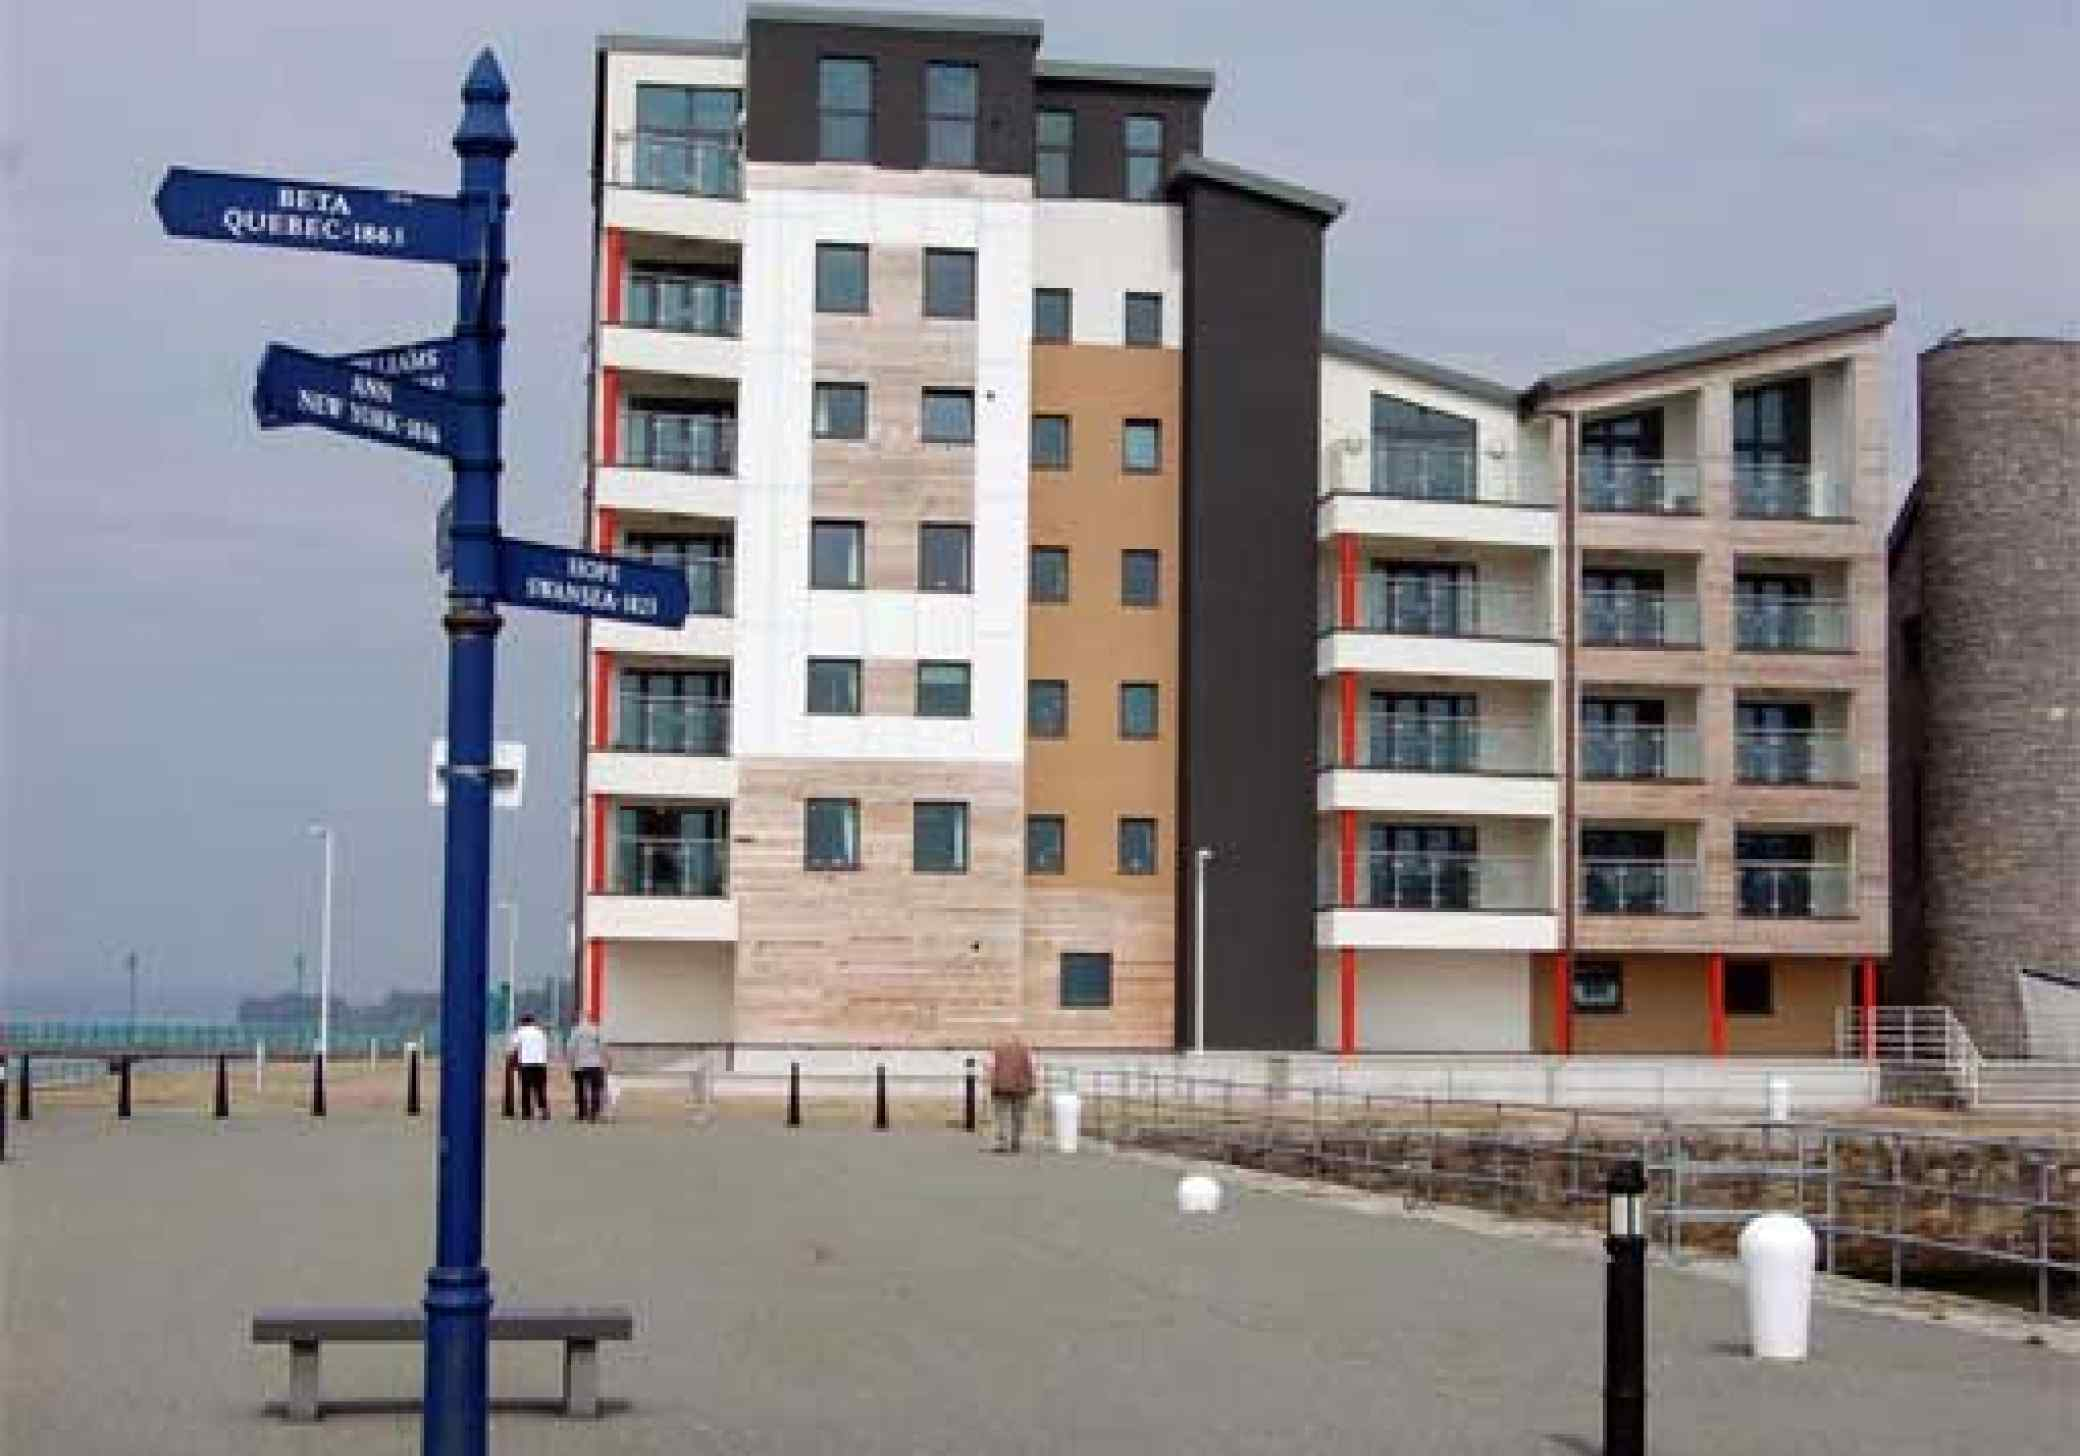 Victoria Dock Caernarfon archiectural open space